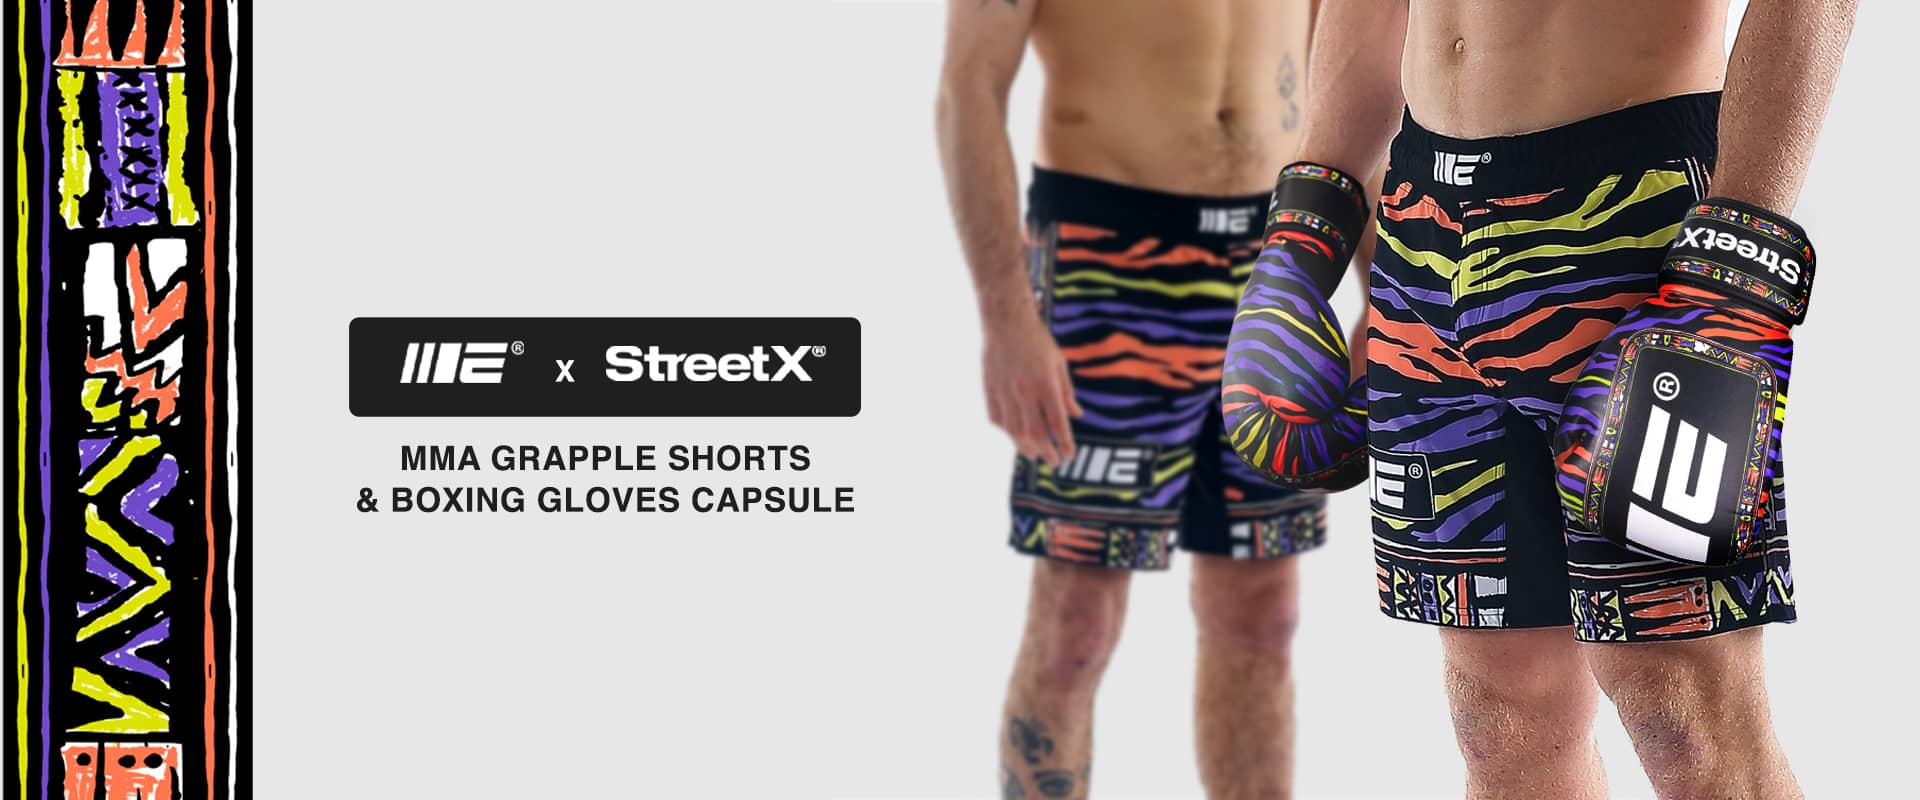 Engage MMA collaboration with Streetx | MMA Fightwear, Surf Tiger Grappling Shorts and Boxing Gloves